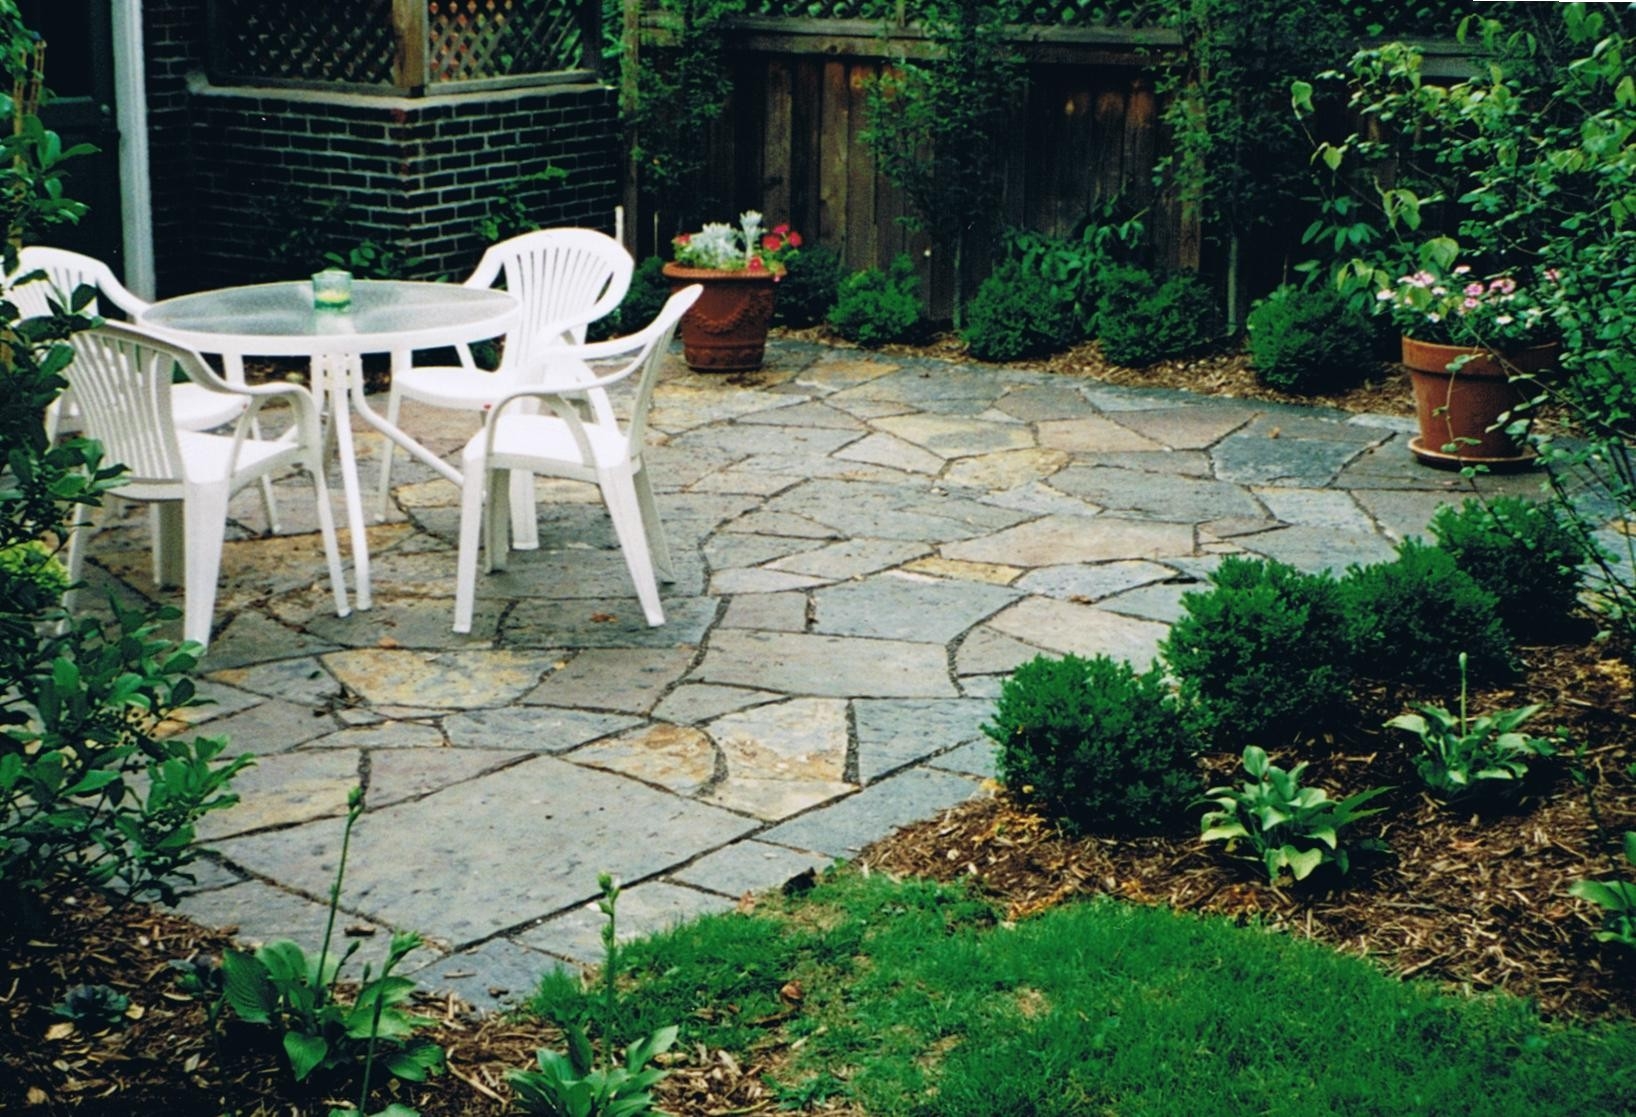 Patio Hackett Stone on Sand.jpg